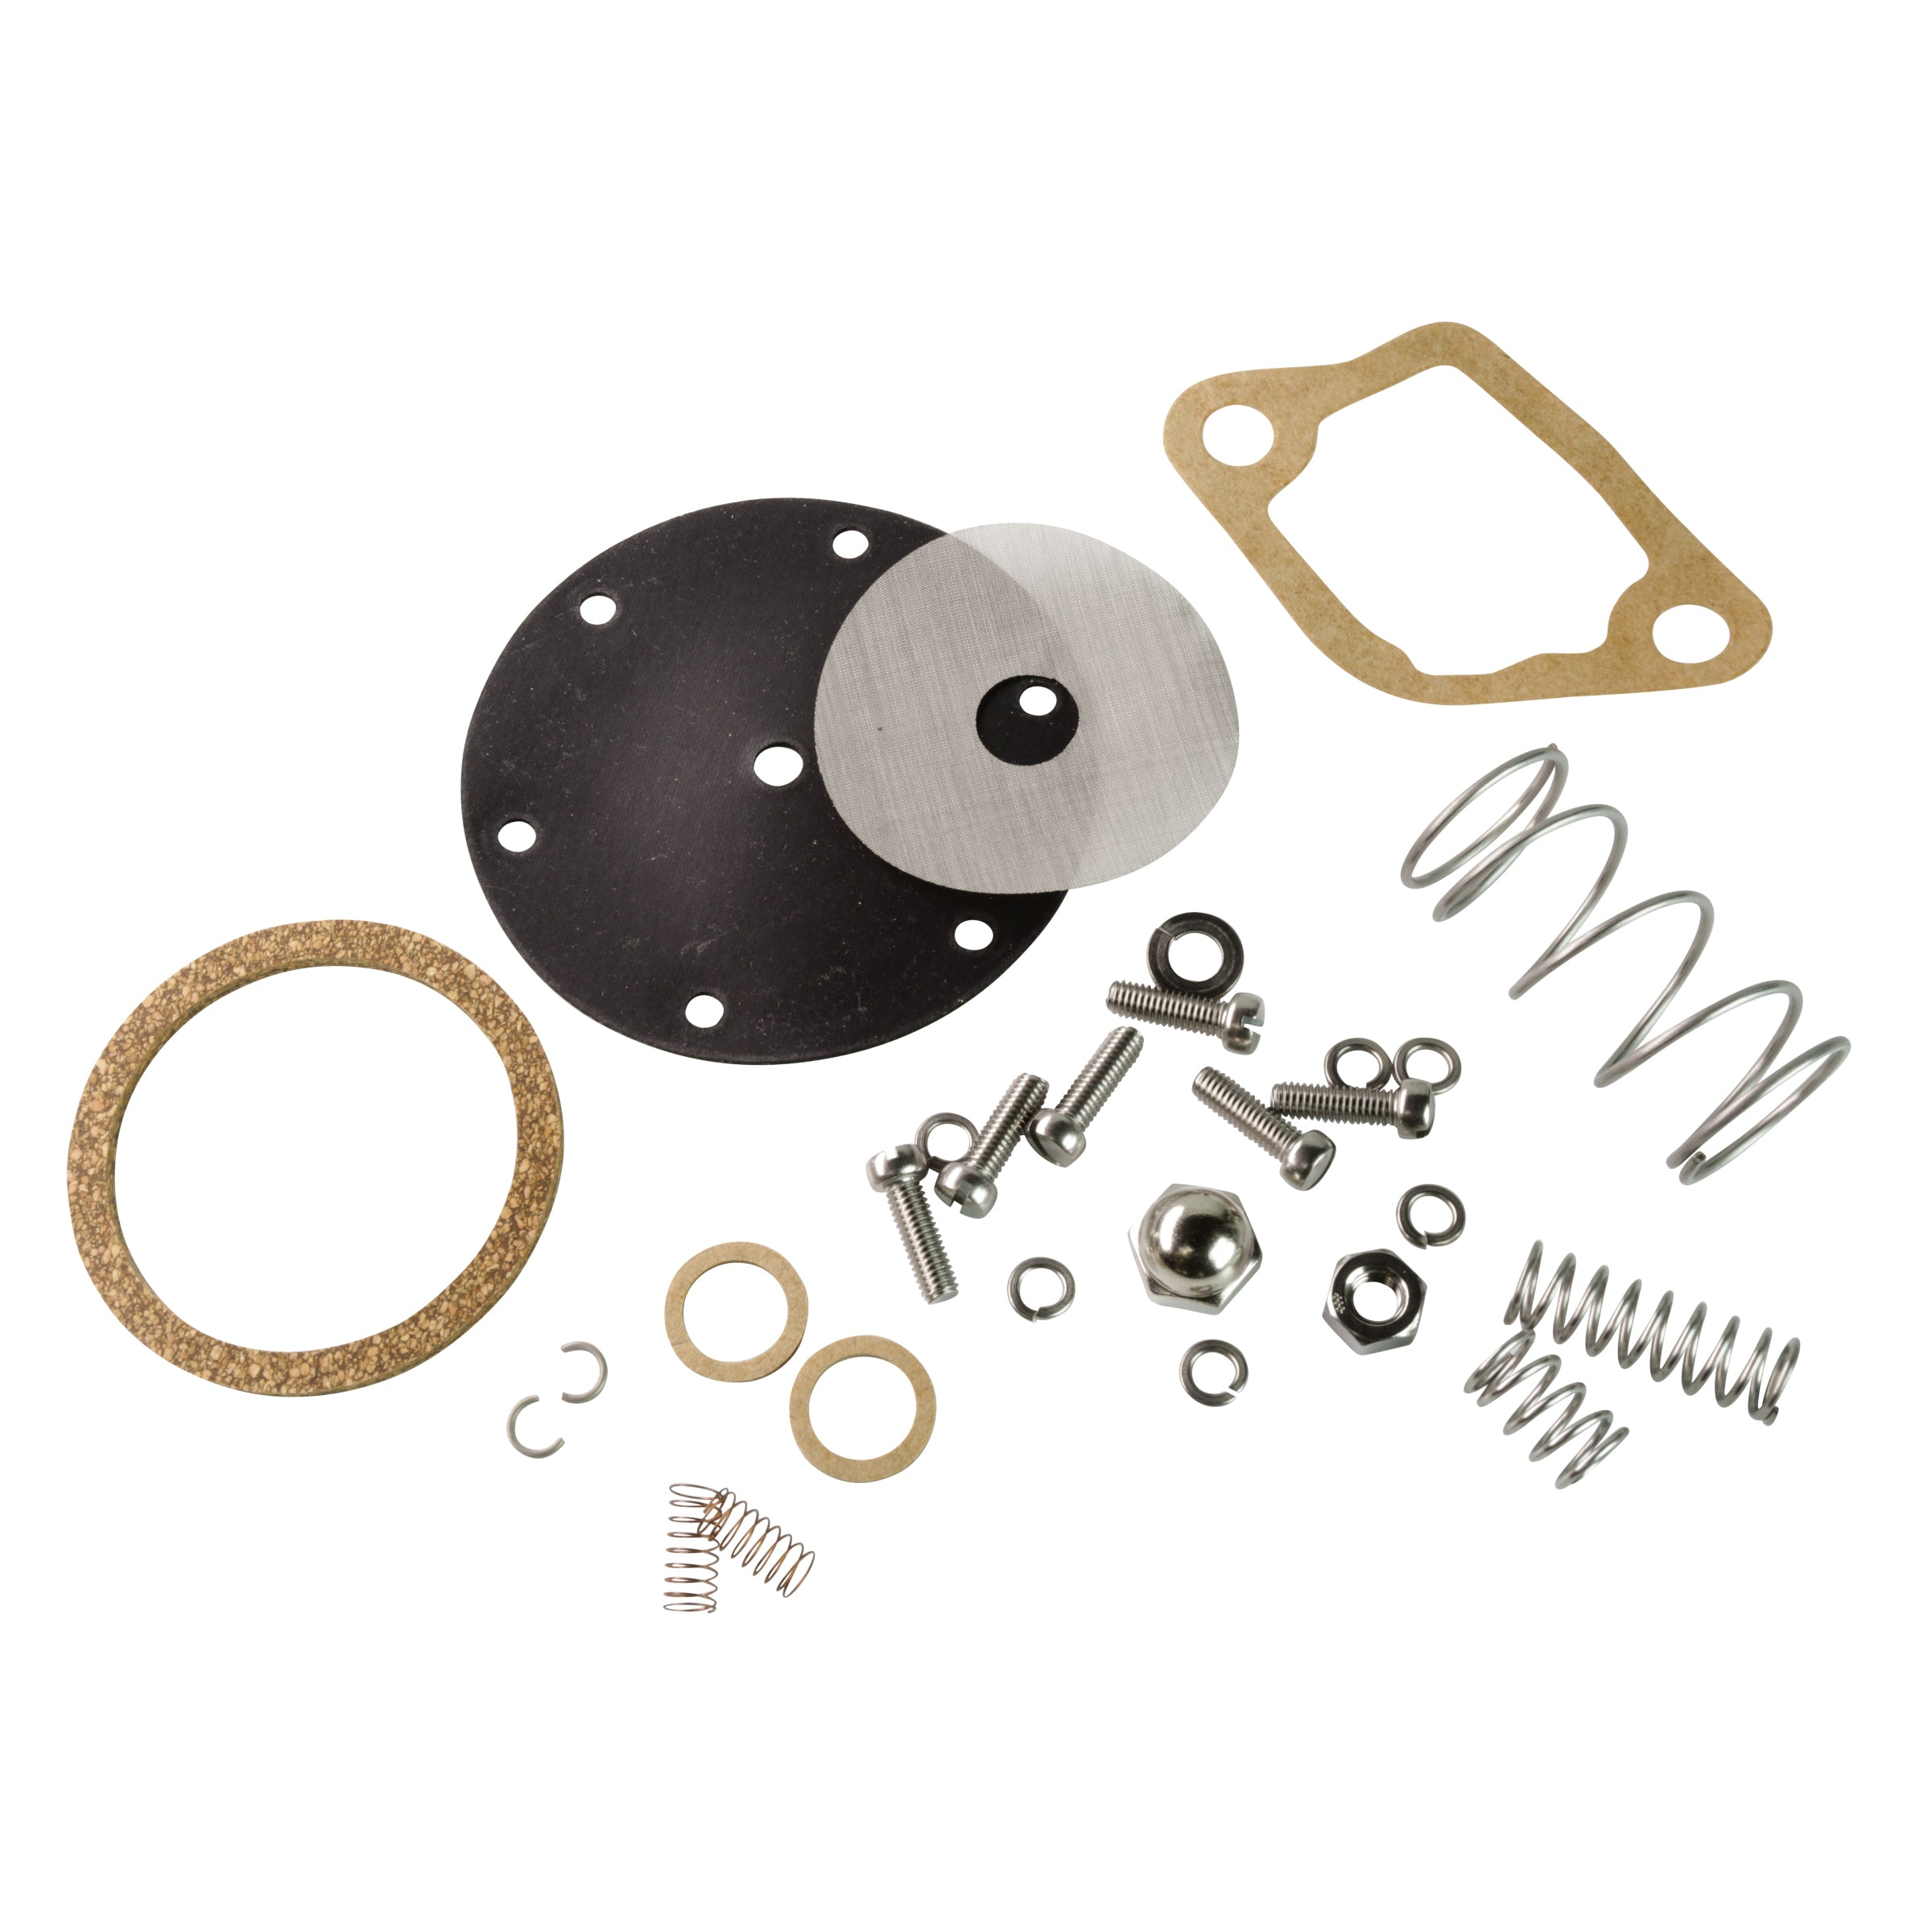 Fuel Pump Repair Kit • 1932-34 Ford 4 Cylinder